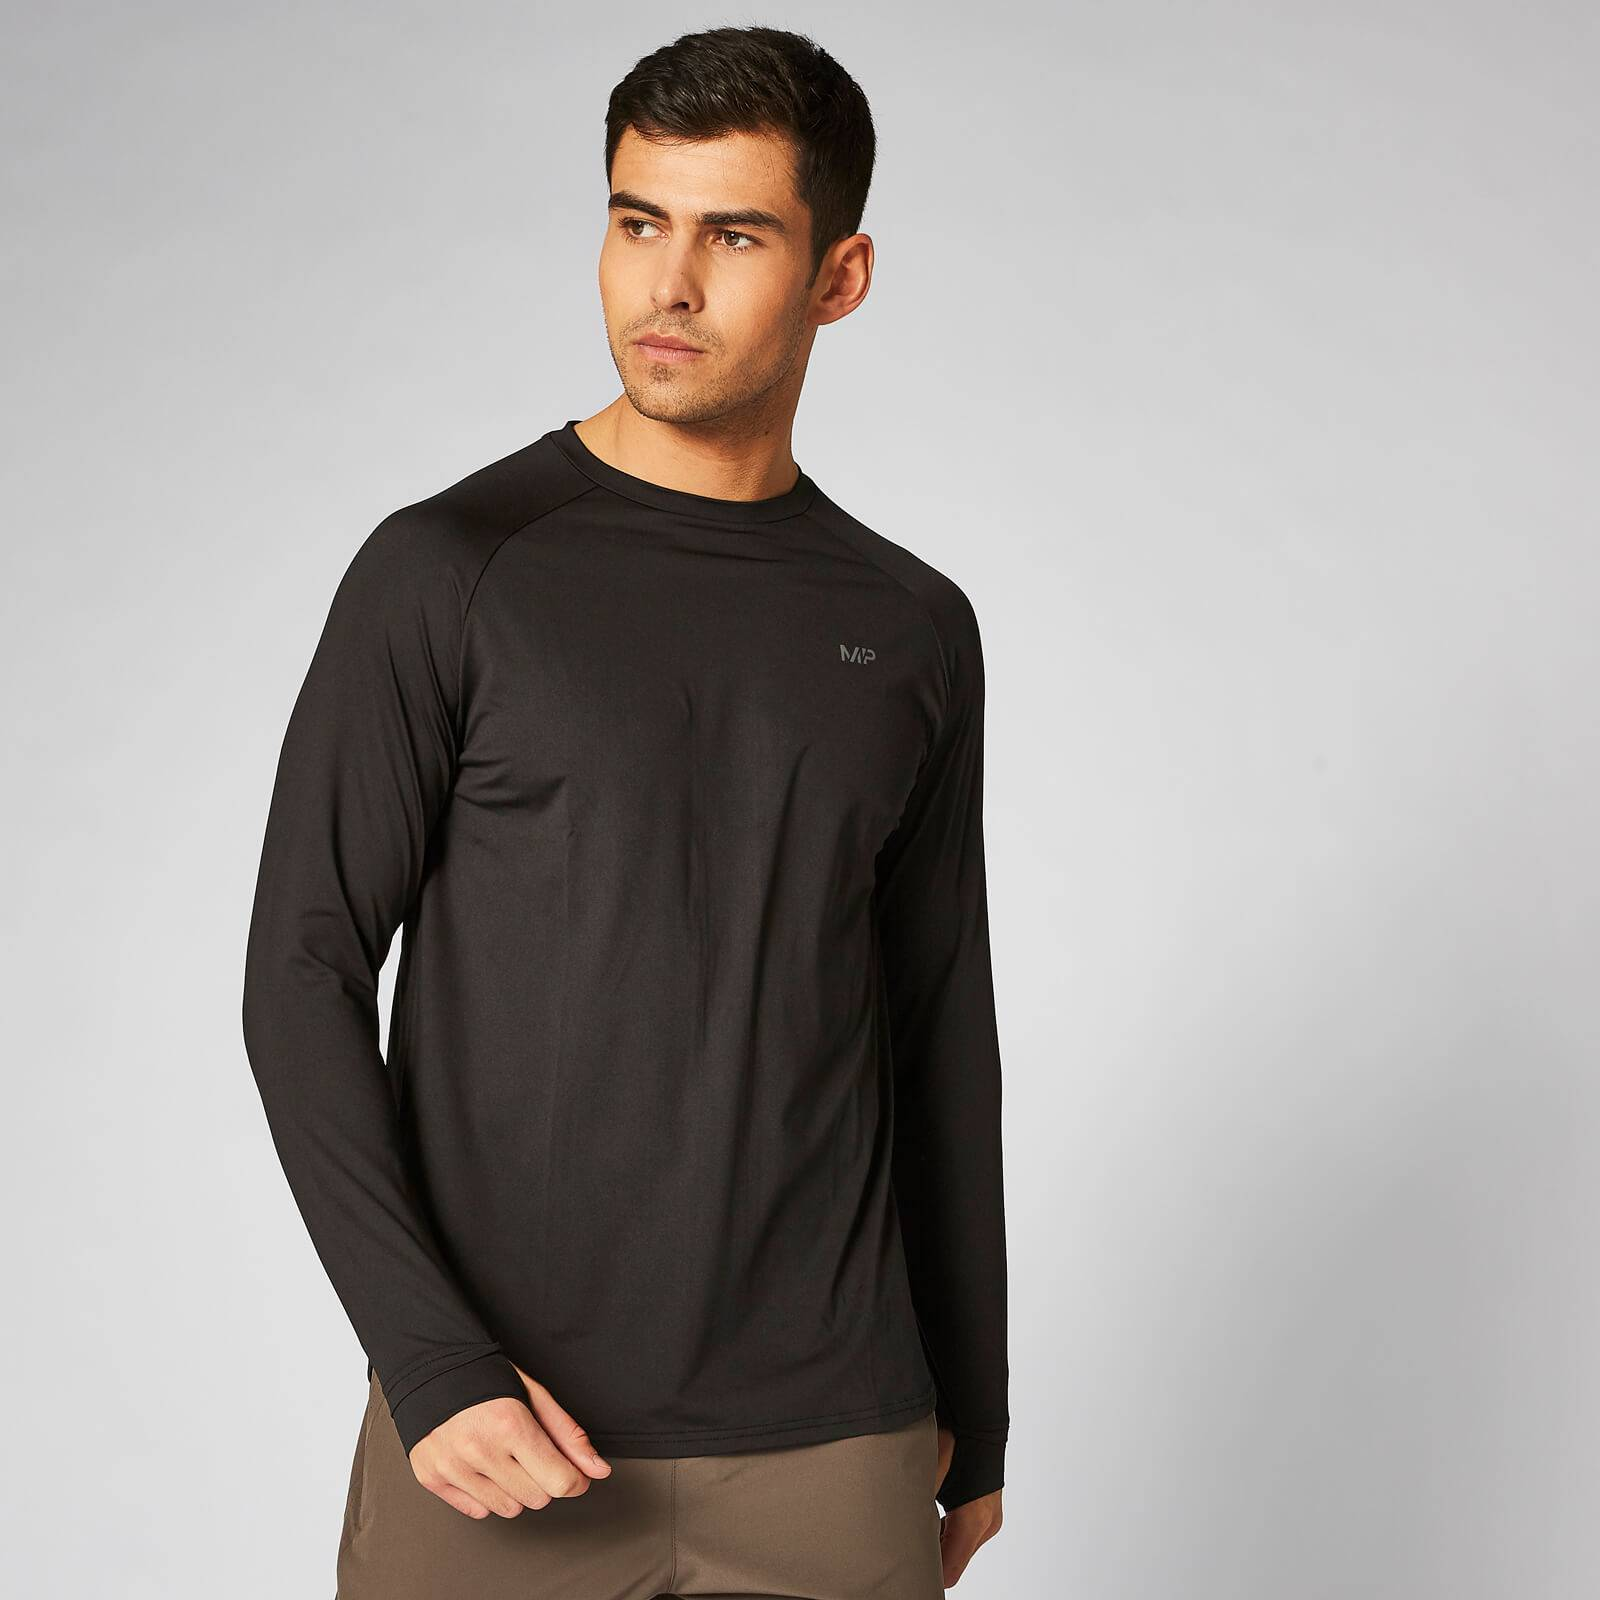 Myprotein Dry-Tech Infinity Long-Sleeve T-Shirt – Black - XS